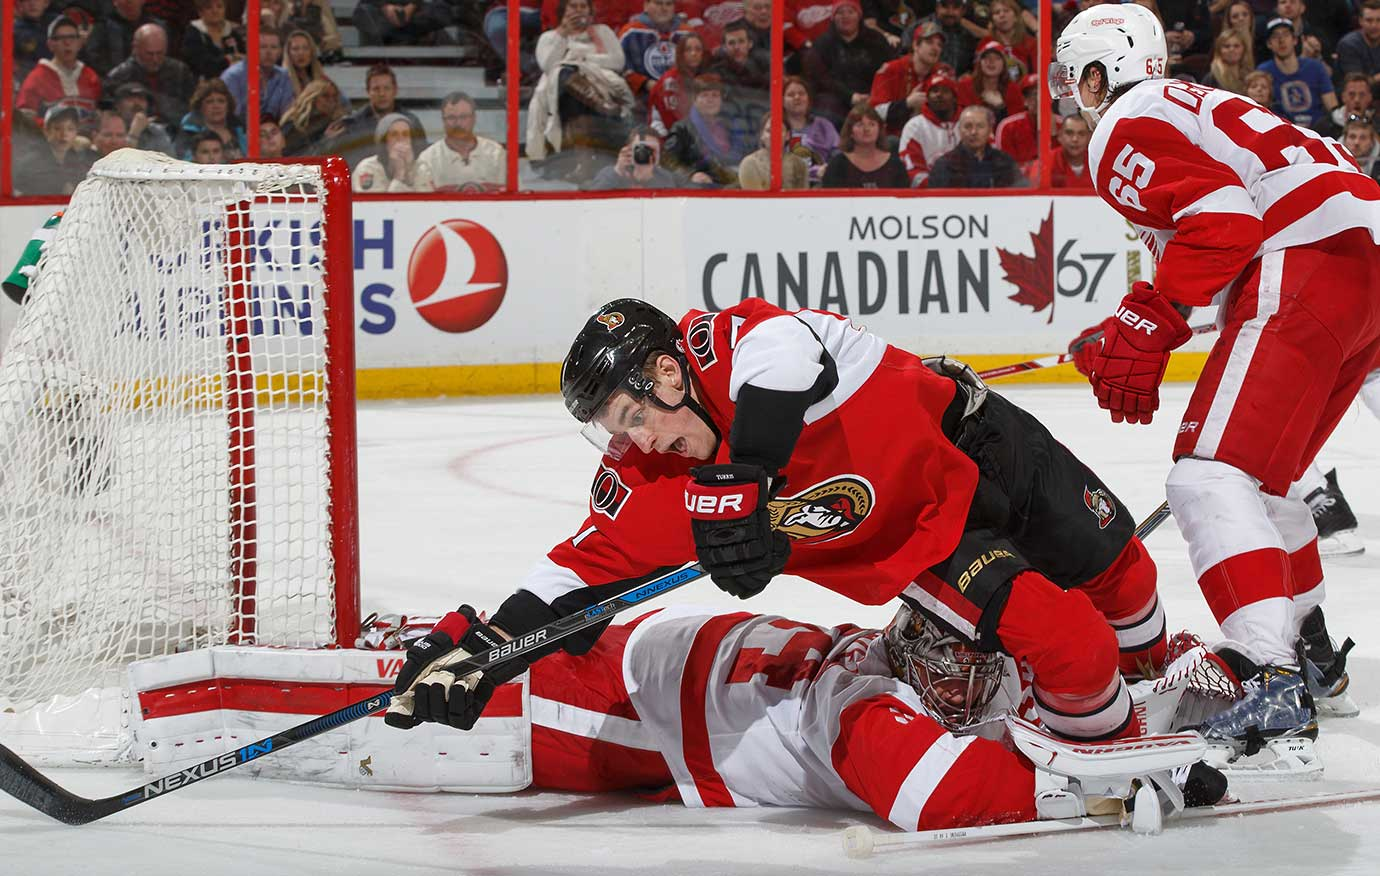 Kyle Turris of the Ottawa Senators collides with Petr Mrazek of the Detroit Red Wings outside his crease.